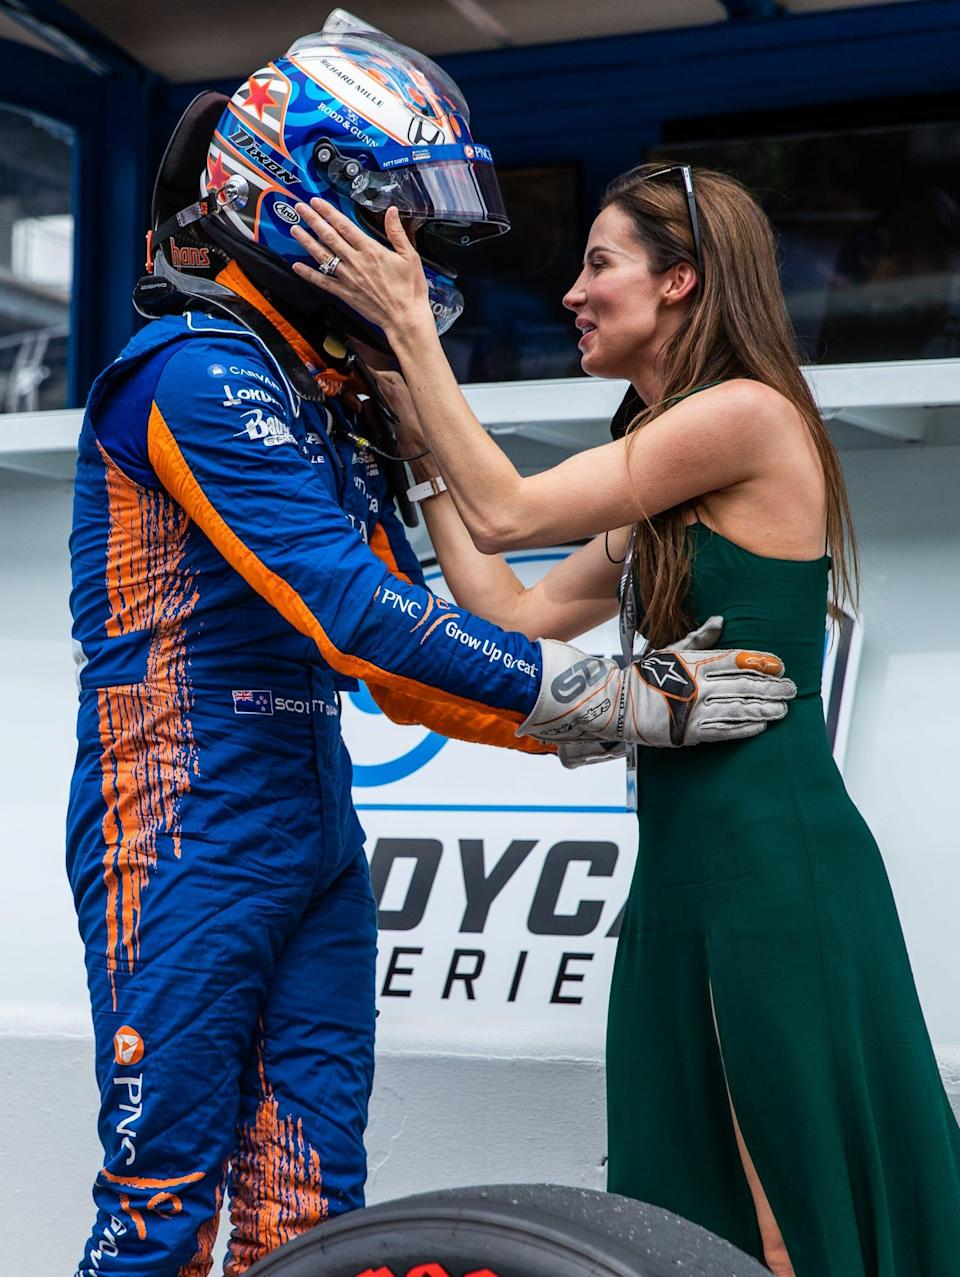 Chip Ganassi Racing driver Scott Dixon (9) gets out of his car to wife Emma Davies-Dixon Saturday, May 22, 2021, after landing the pole position during Fast Nine qualifying for the 105th running of the Indianapolis 500 at Indianapolis Motor Speedway.